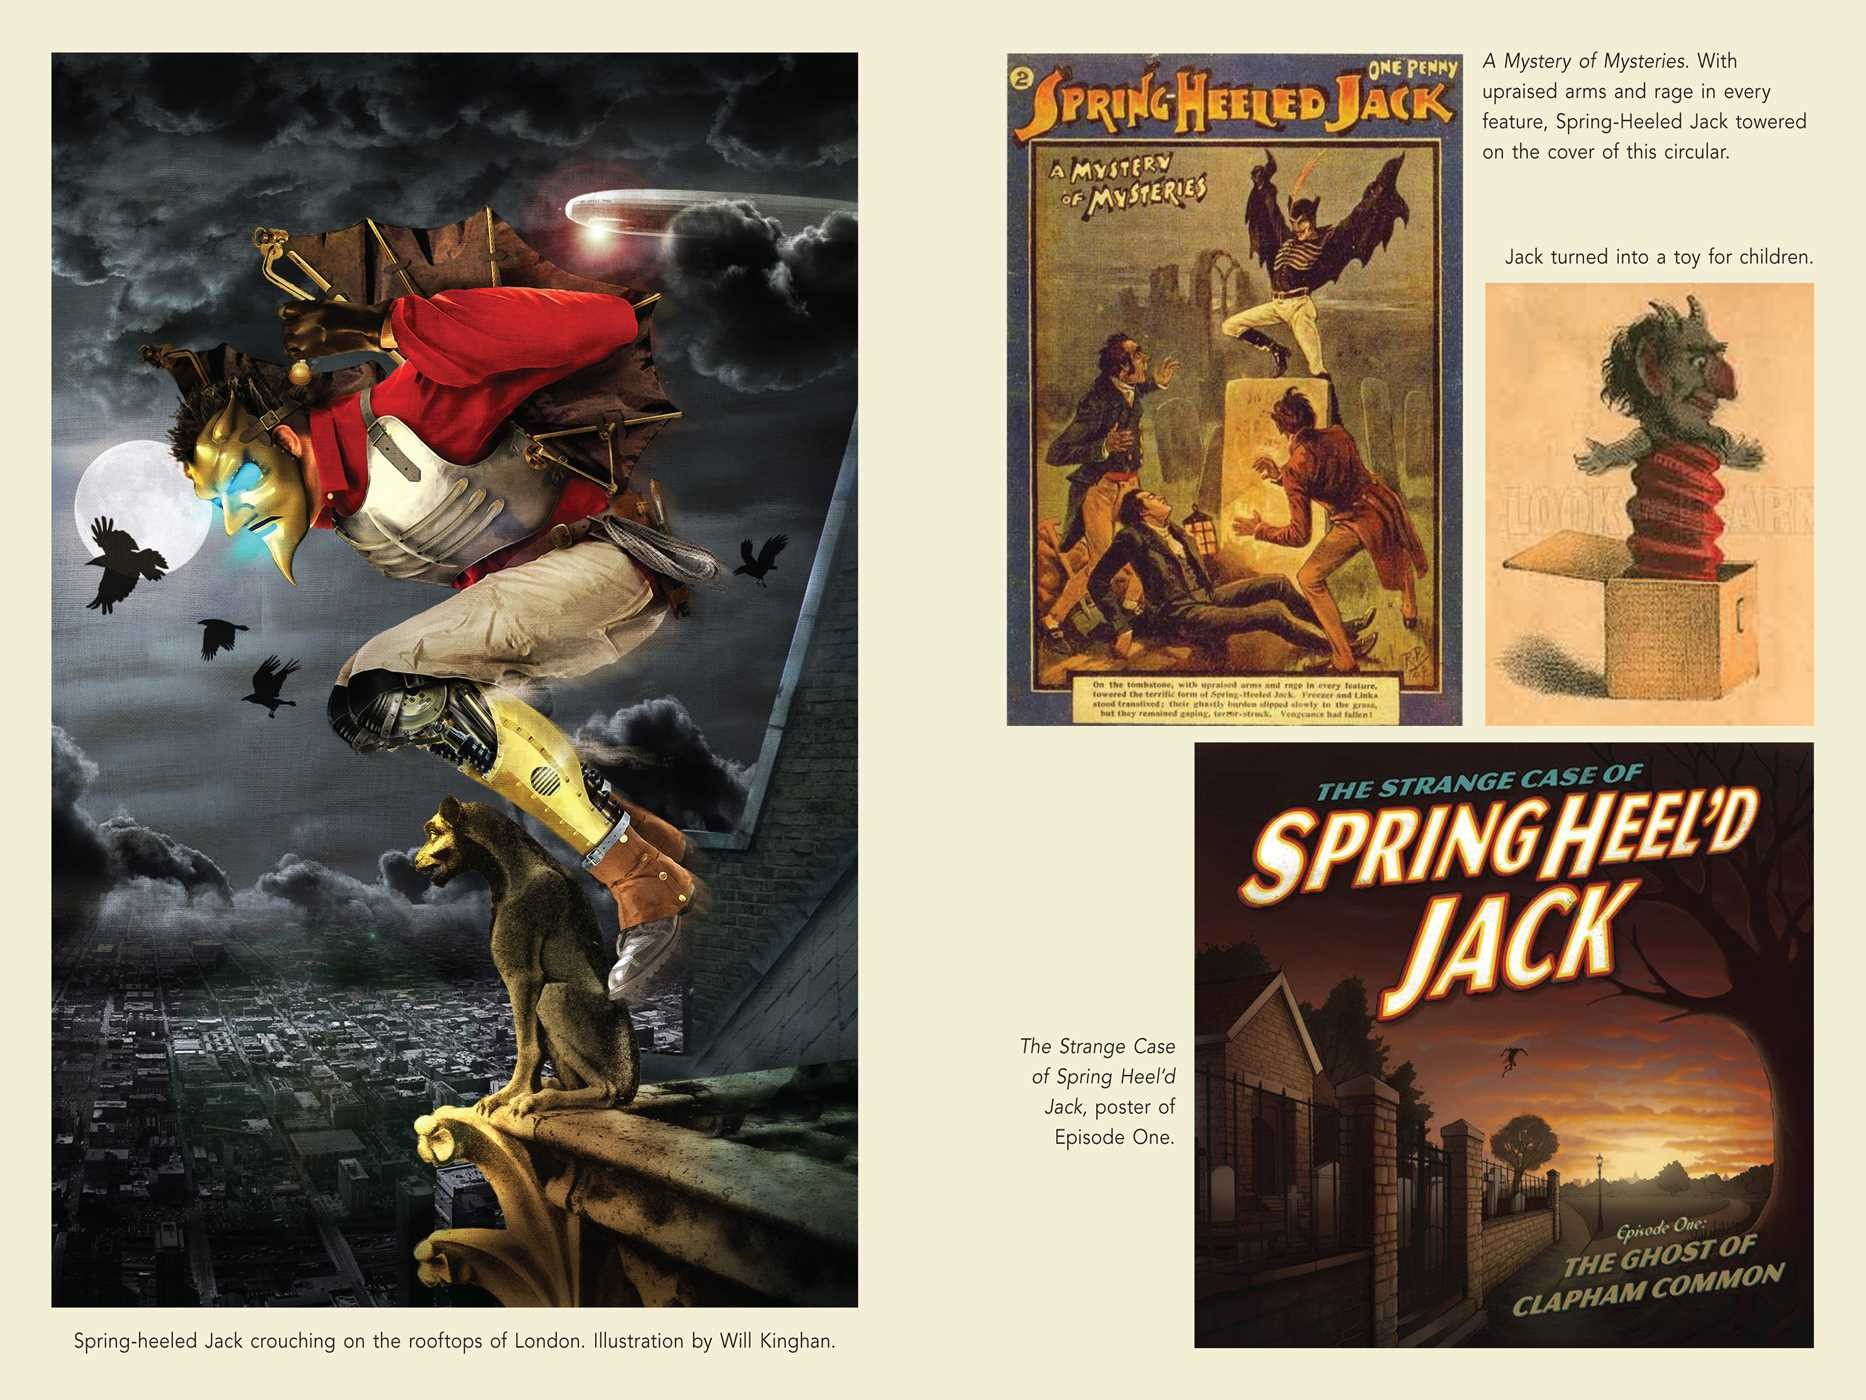 The mystery of spring heeled jack 9781620554968.in04